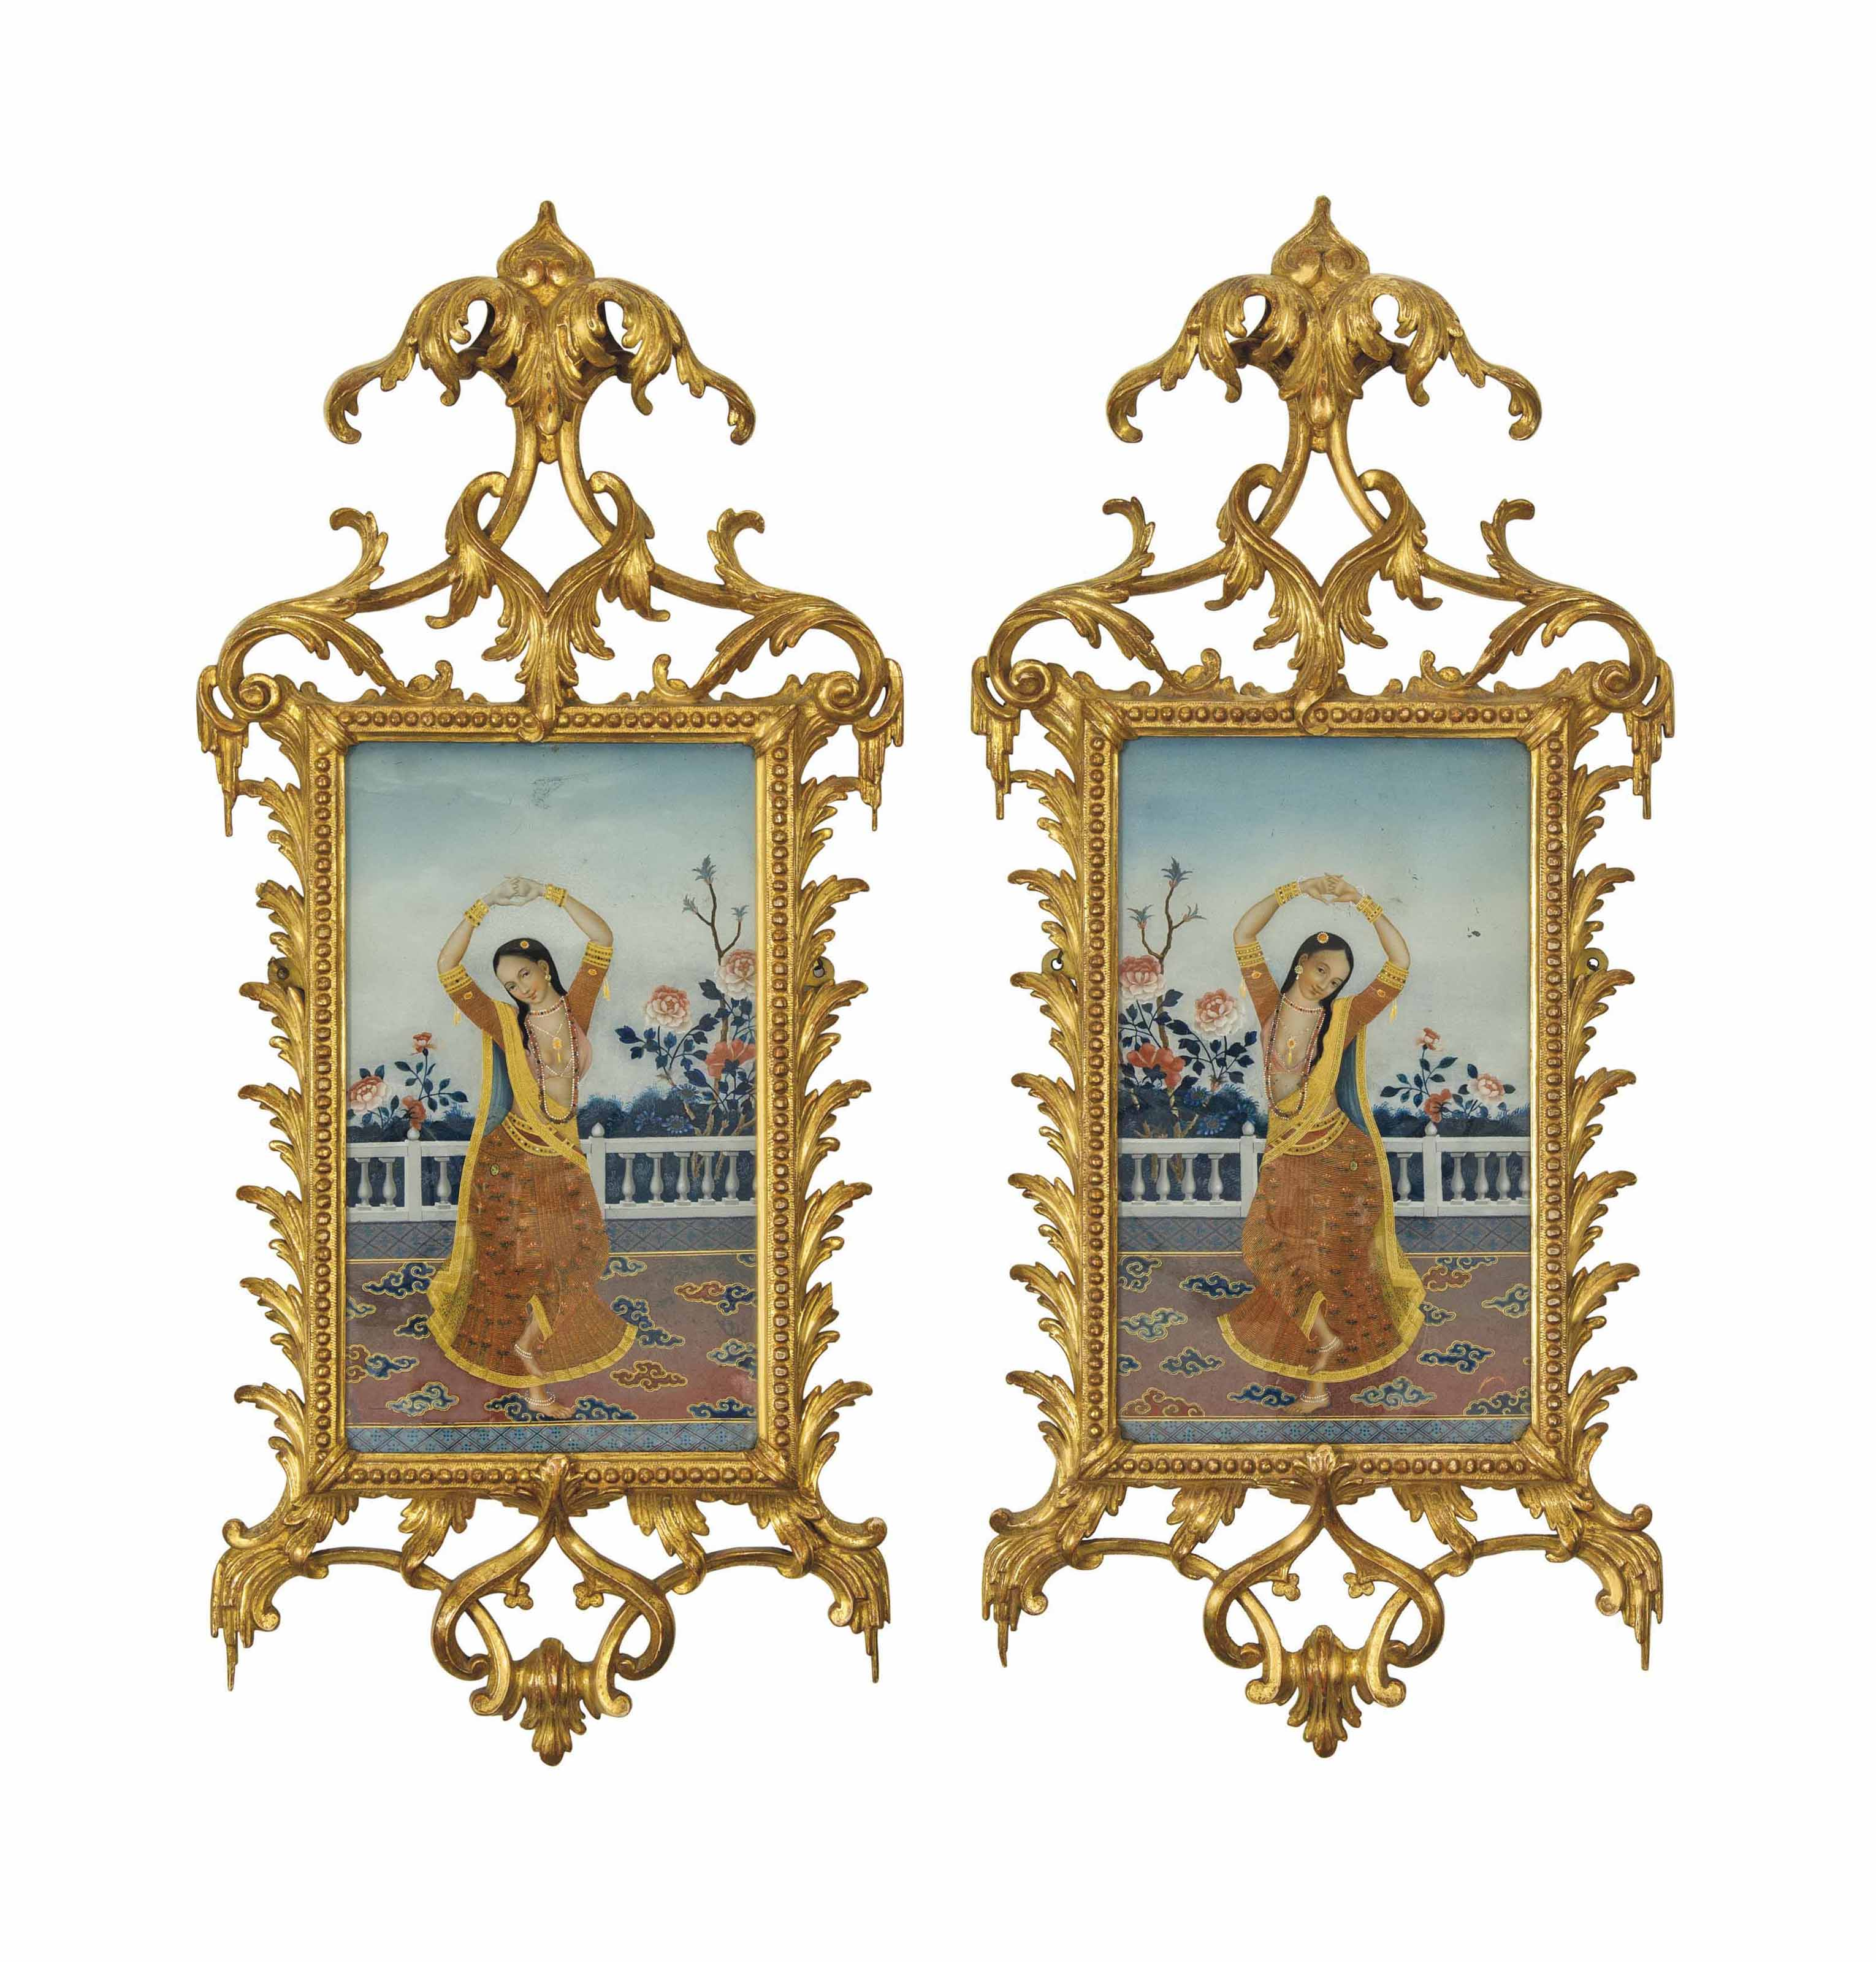 A PAIR OF INDIAN REVERSE GLASS